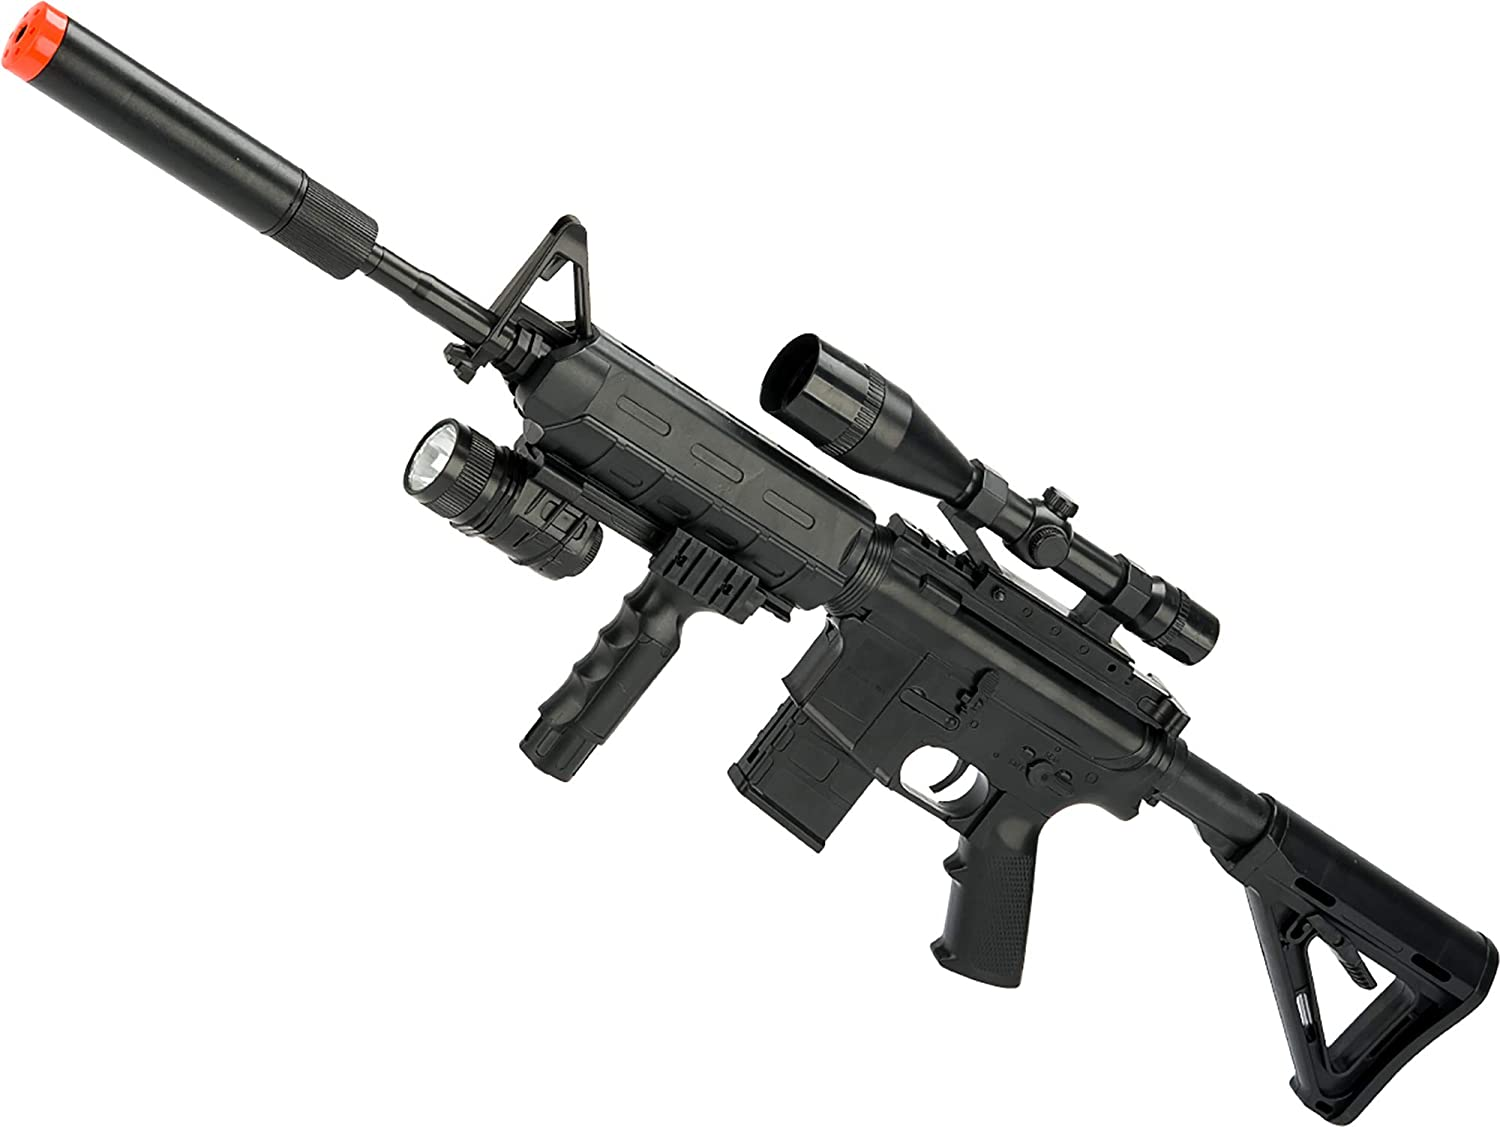 Evike CYMA 3/4 Scale Spring Powered Airsoft M4 Rifle (Color: Black)